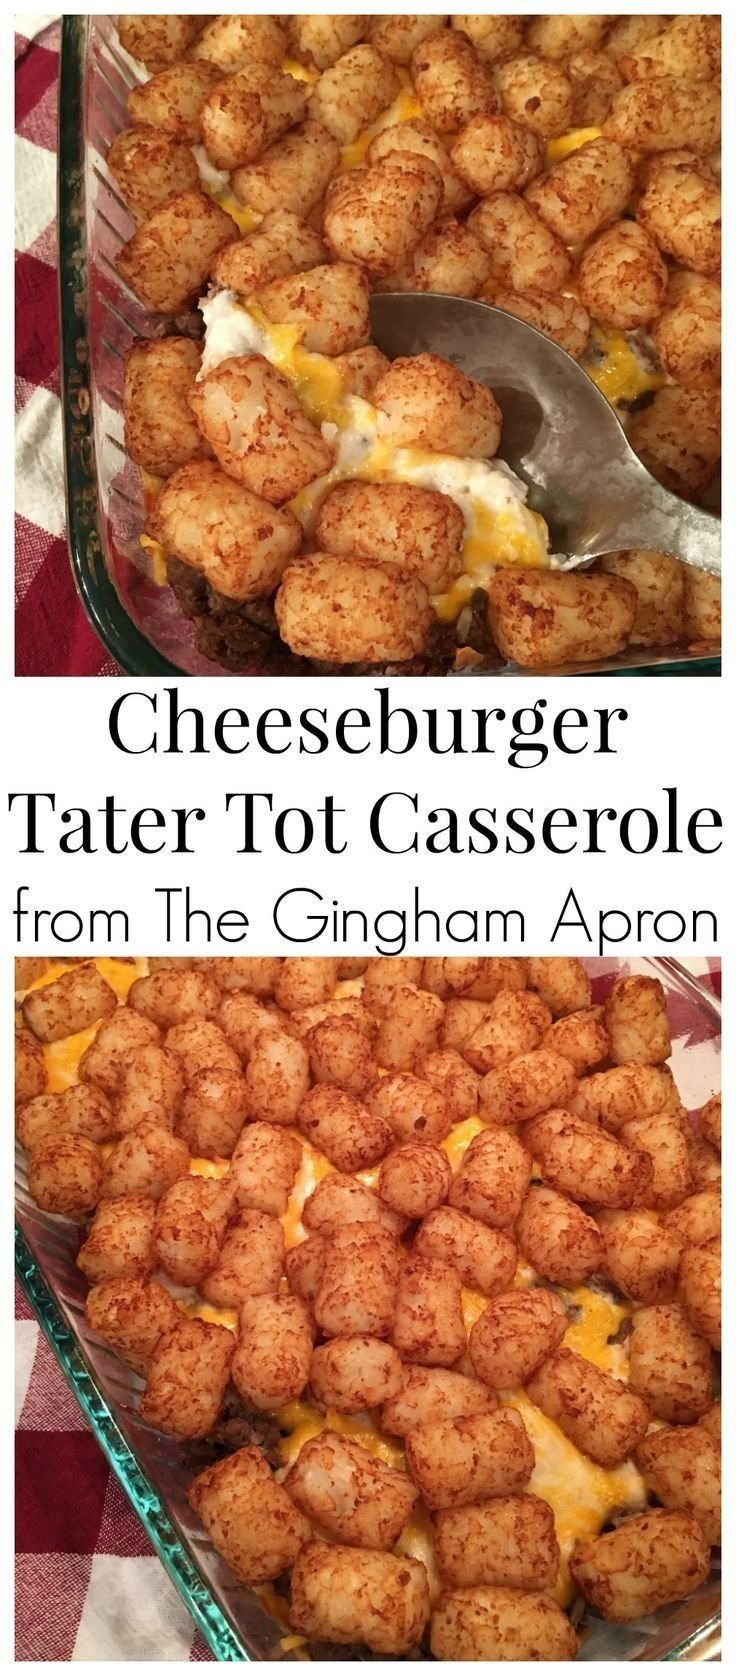 10 Fantastic Cheap And Simple Dinner Ideas cheeseburger tater tot casserole recipe tater tot casserole 2021